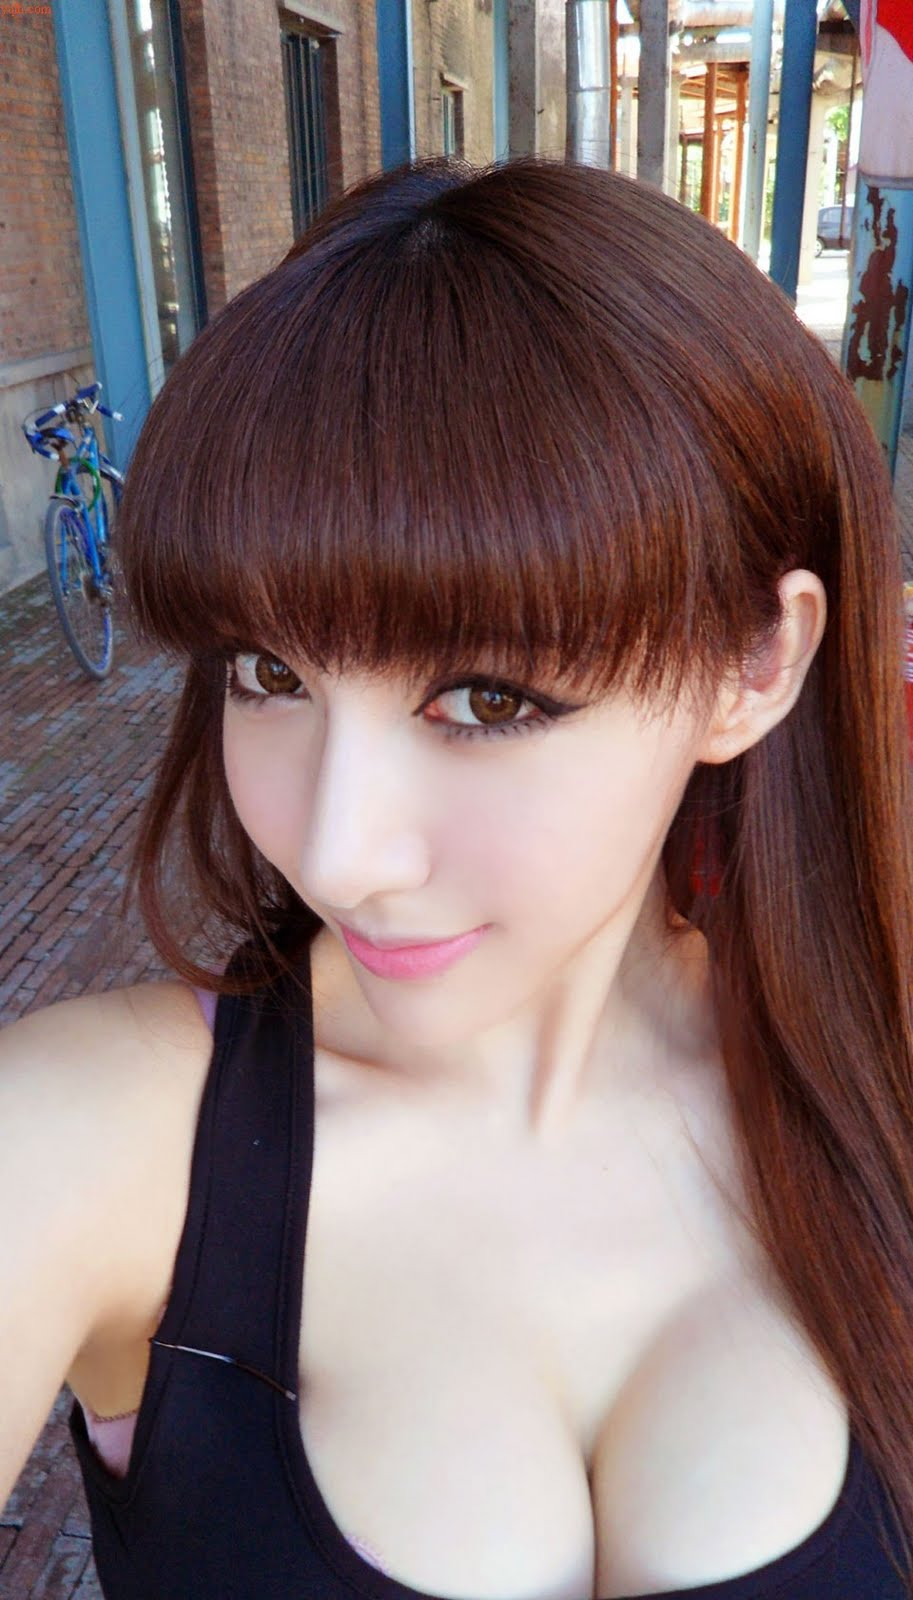 bahama asian personals Myedatecom, the best international online dating site, aims at providing the service about dating information of ladies for men from all around the world these ladies come from china, russia, ukraine, southeast asia, etc and they are seeking for true love.